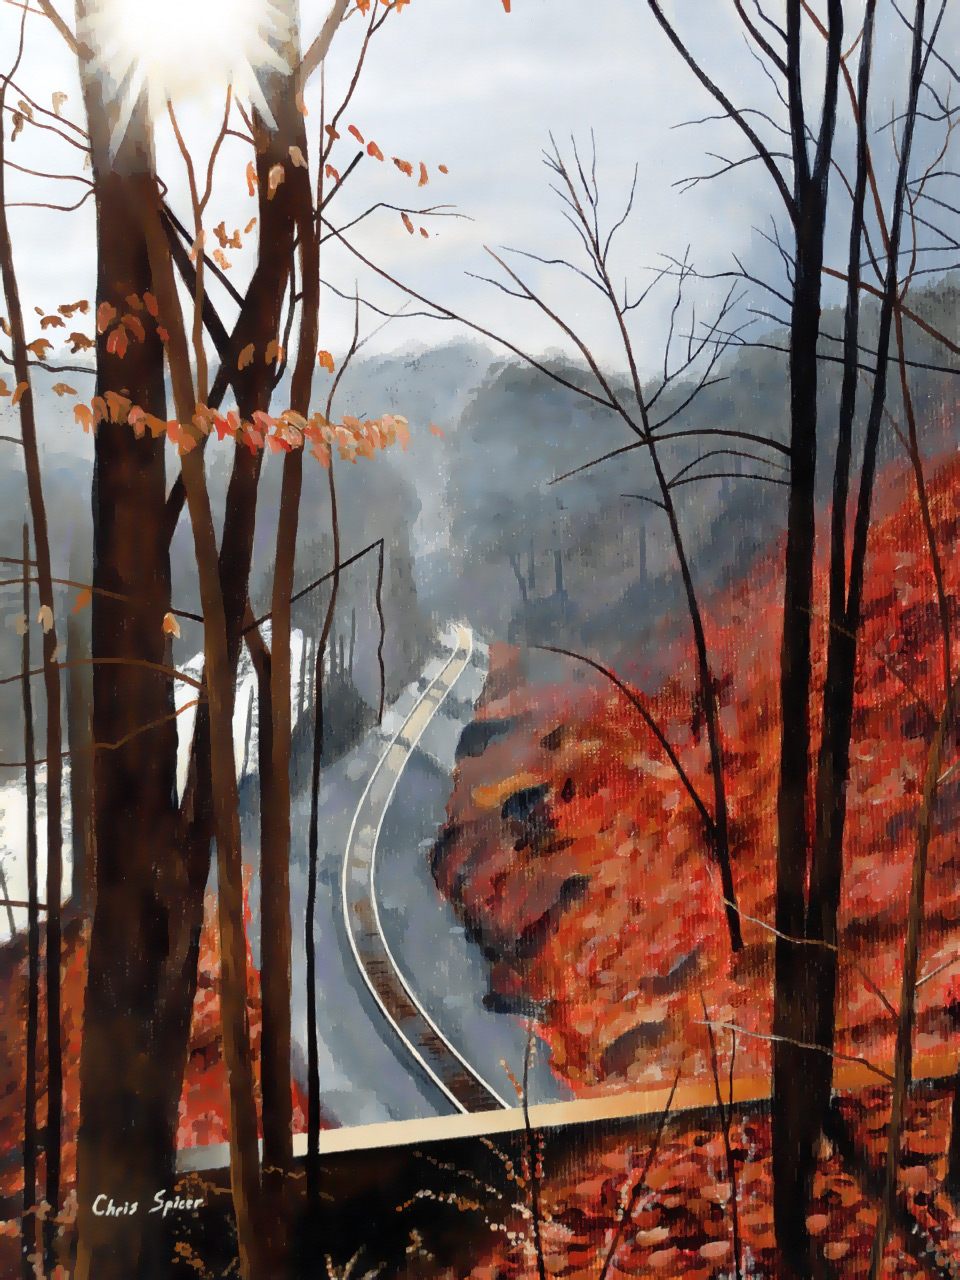 Patapsco Valley: Acrylic Painting by Christopher Spicer - The sun sets behind an autumn vista of bare trees and fallen leaves overlooking a winding railroad as it follows the Patapsco River.